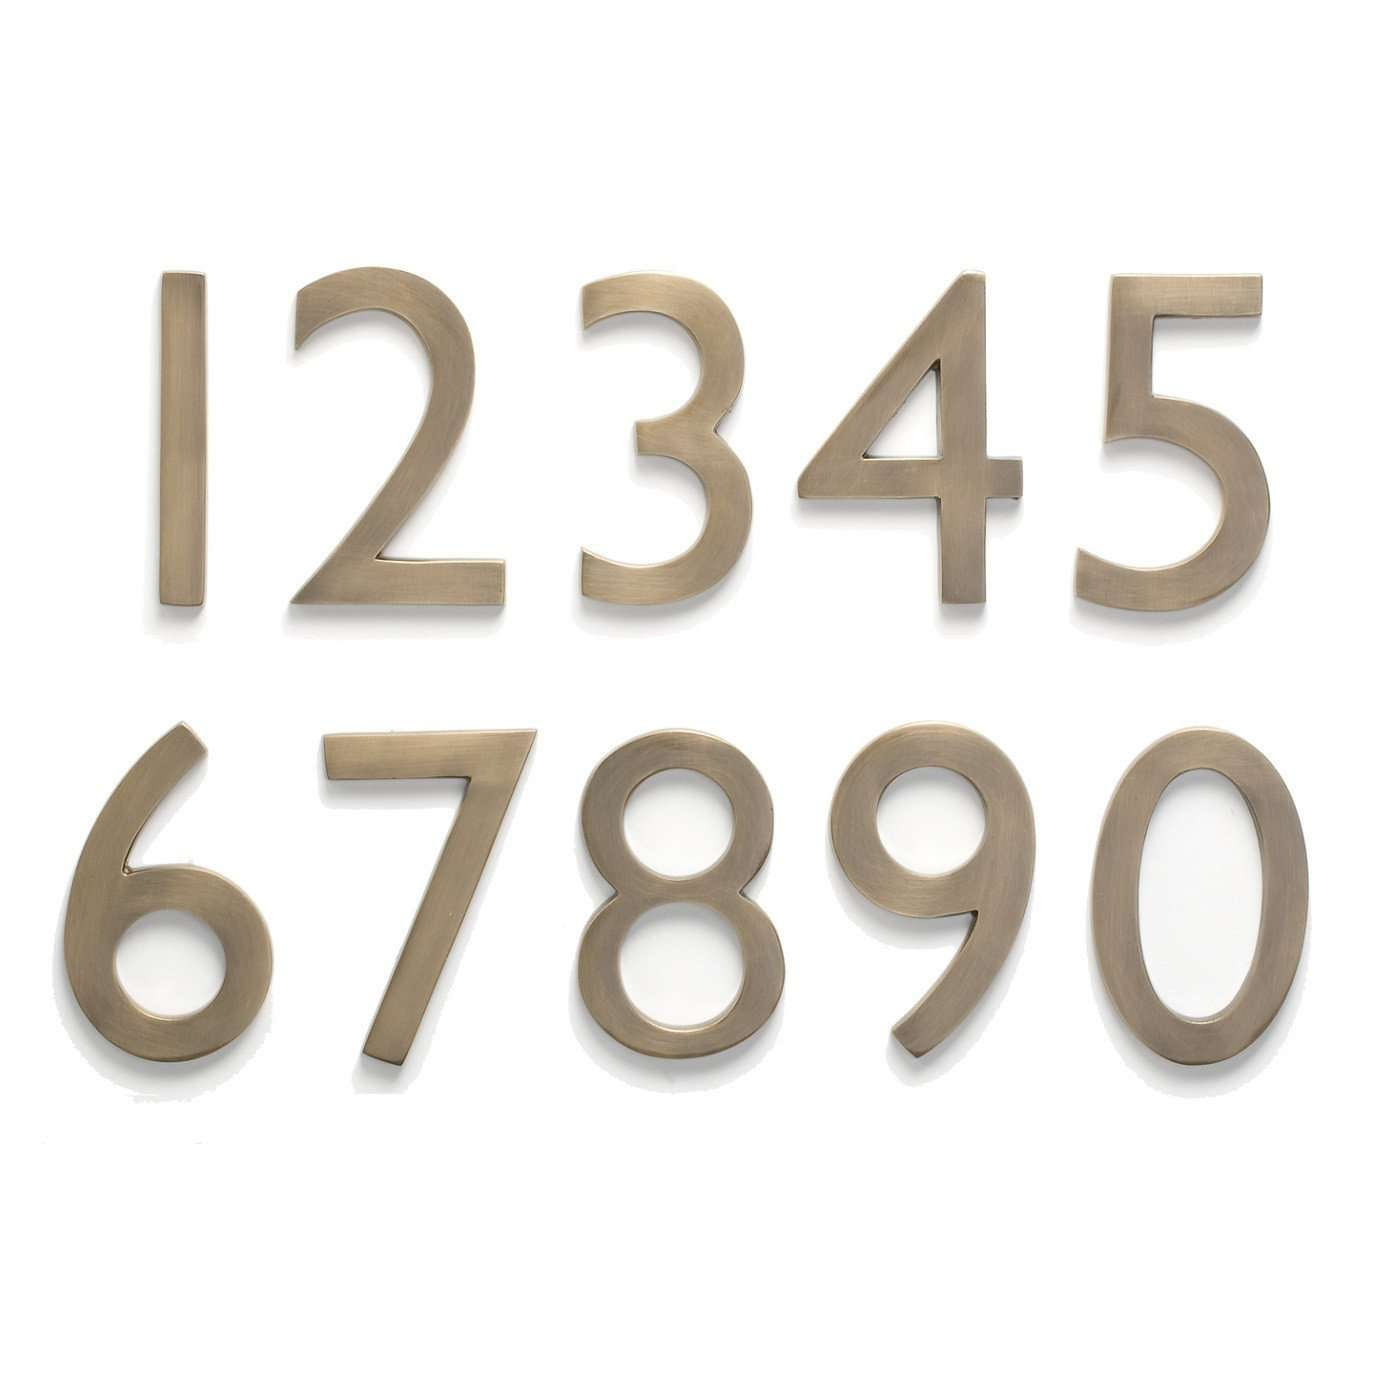 Architectural mailboxes 4 inch cast brass house numbers 0 9